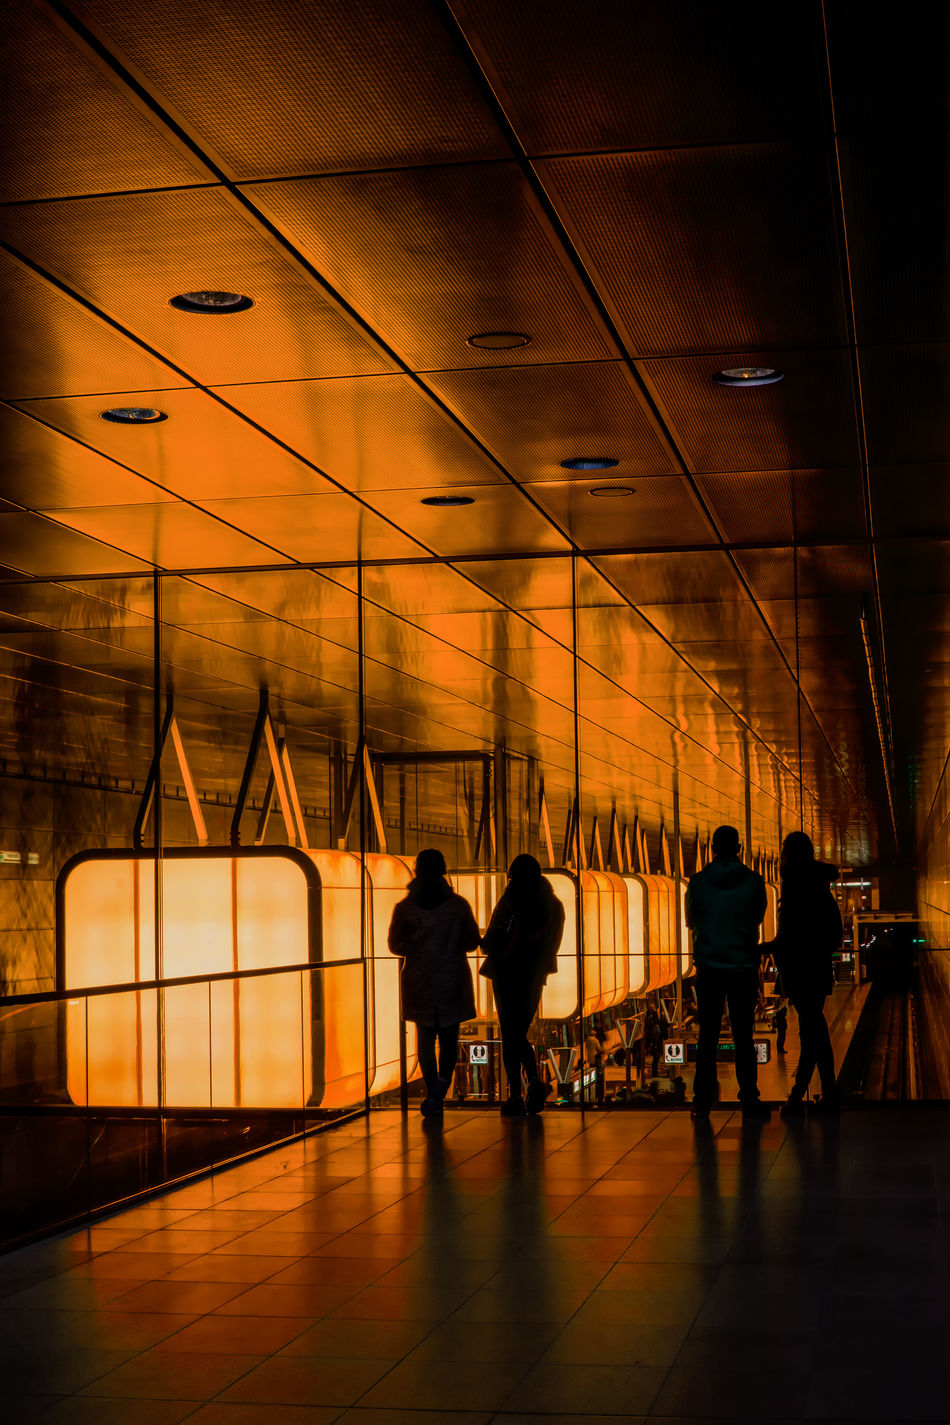 Good ideas glow in the dark. Silhouette People City Cityscape Creative Photography CreativePhotographer Architecture_collection Architecture City Life Urban Exploration Europe HDR Shadows And Light Night Lights Illuminated Hamburg Hamburg Hafencity HafenCity University Hafencityuniversität Adults Only Train Station Tube Station  Glow Colourful Travel Destinations